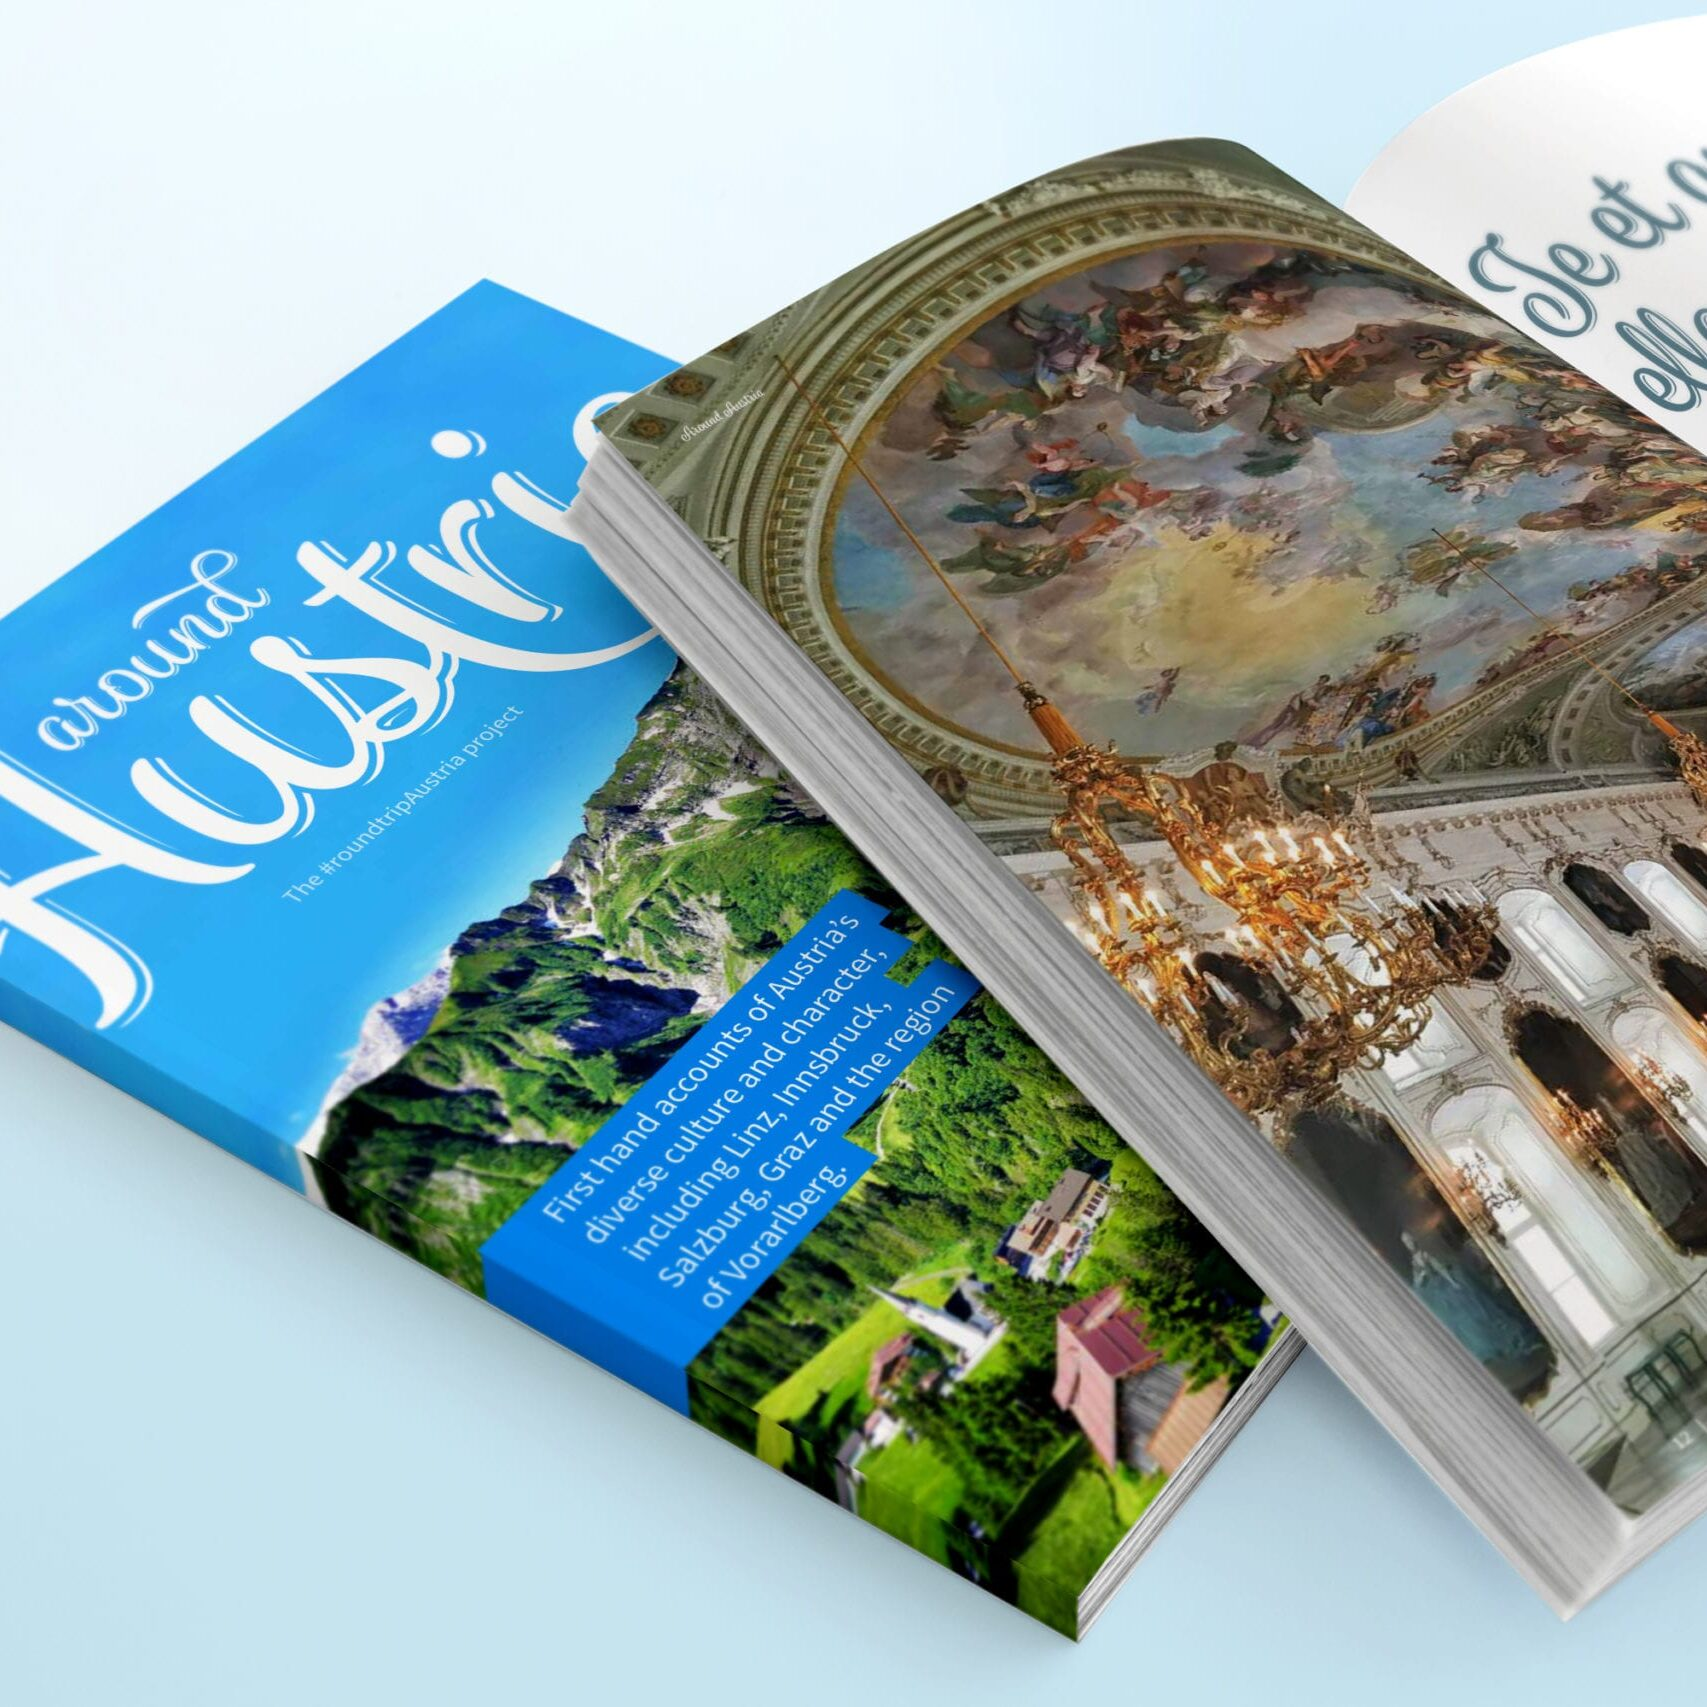 Design for an Austrian Travel magazine